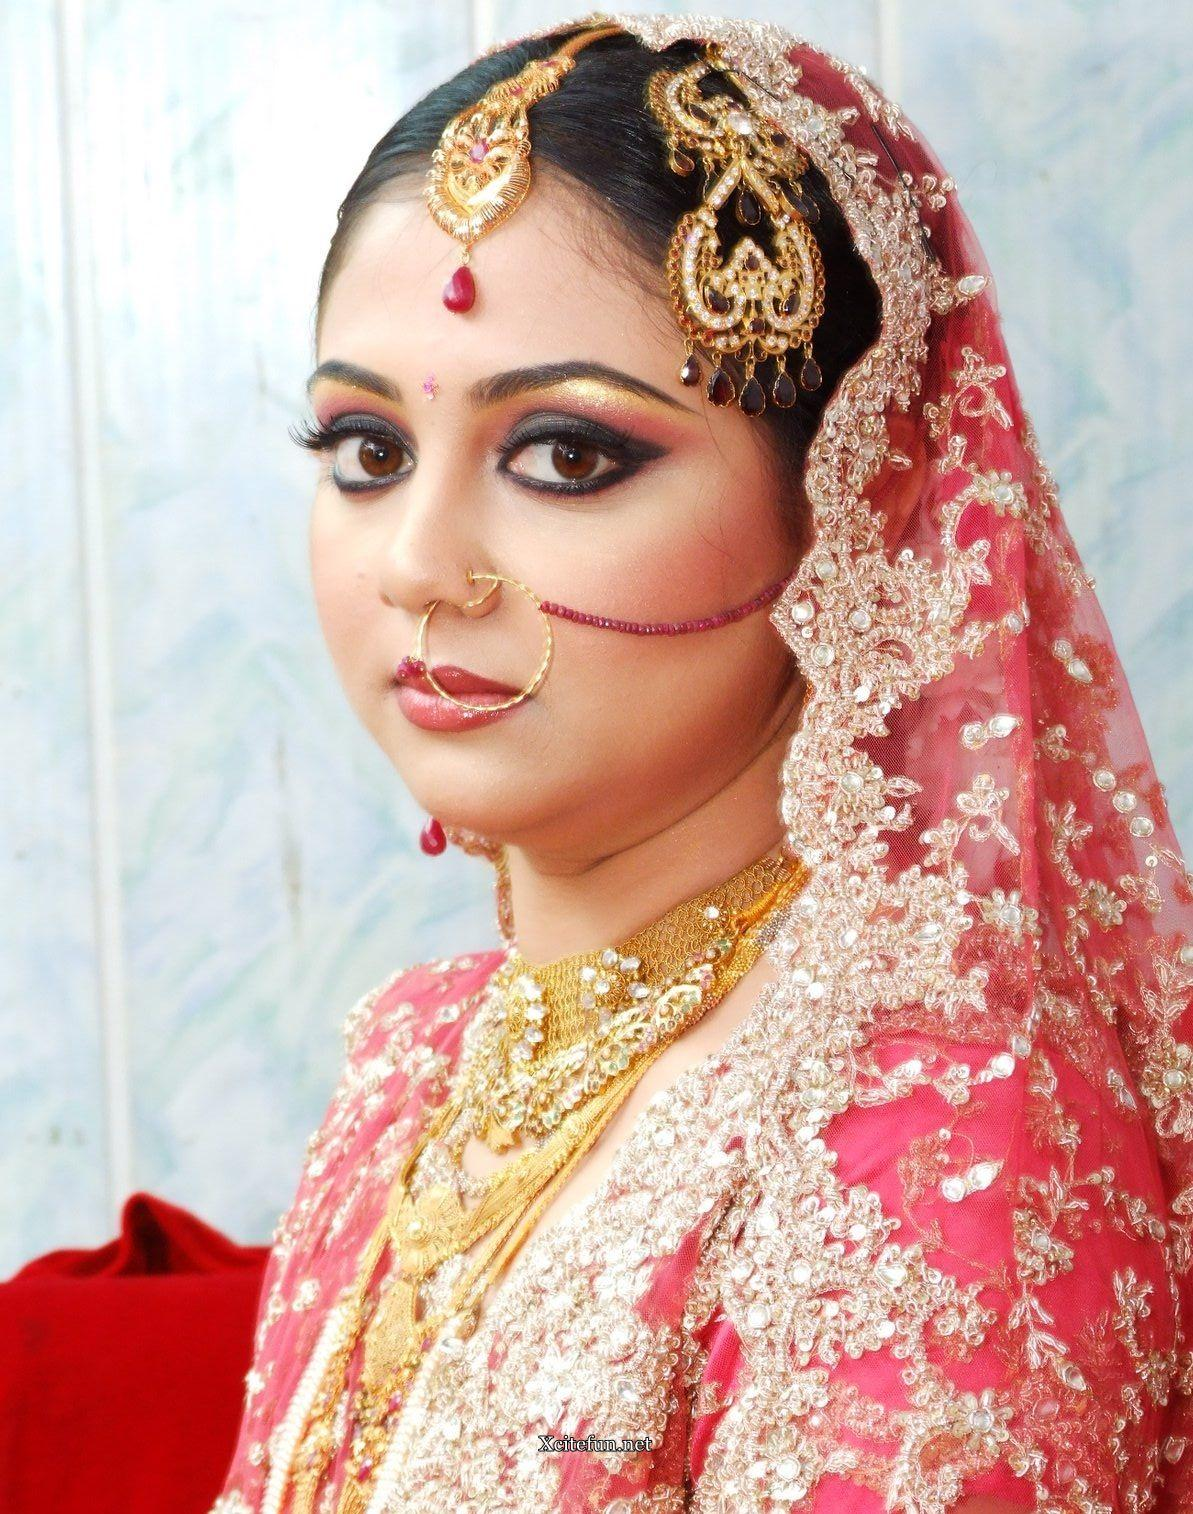 Traditional Wedding Makeup Pictures : Bridal Makeup Tips And Ideas. Beauty Tips and Style Tips